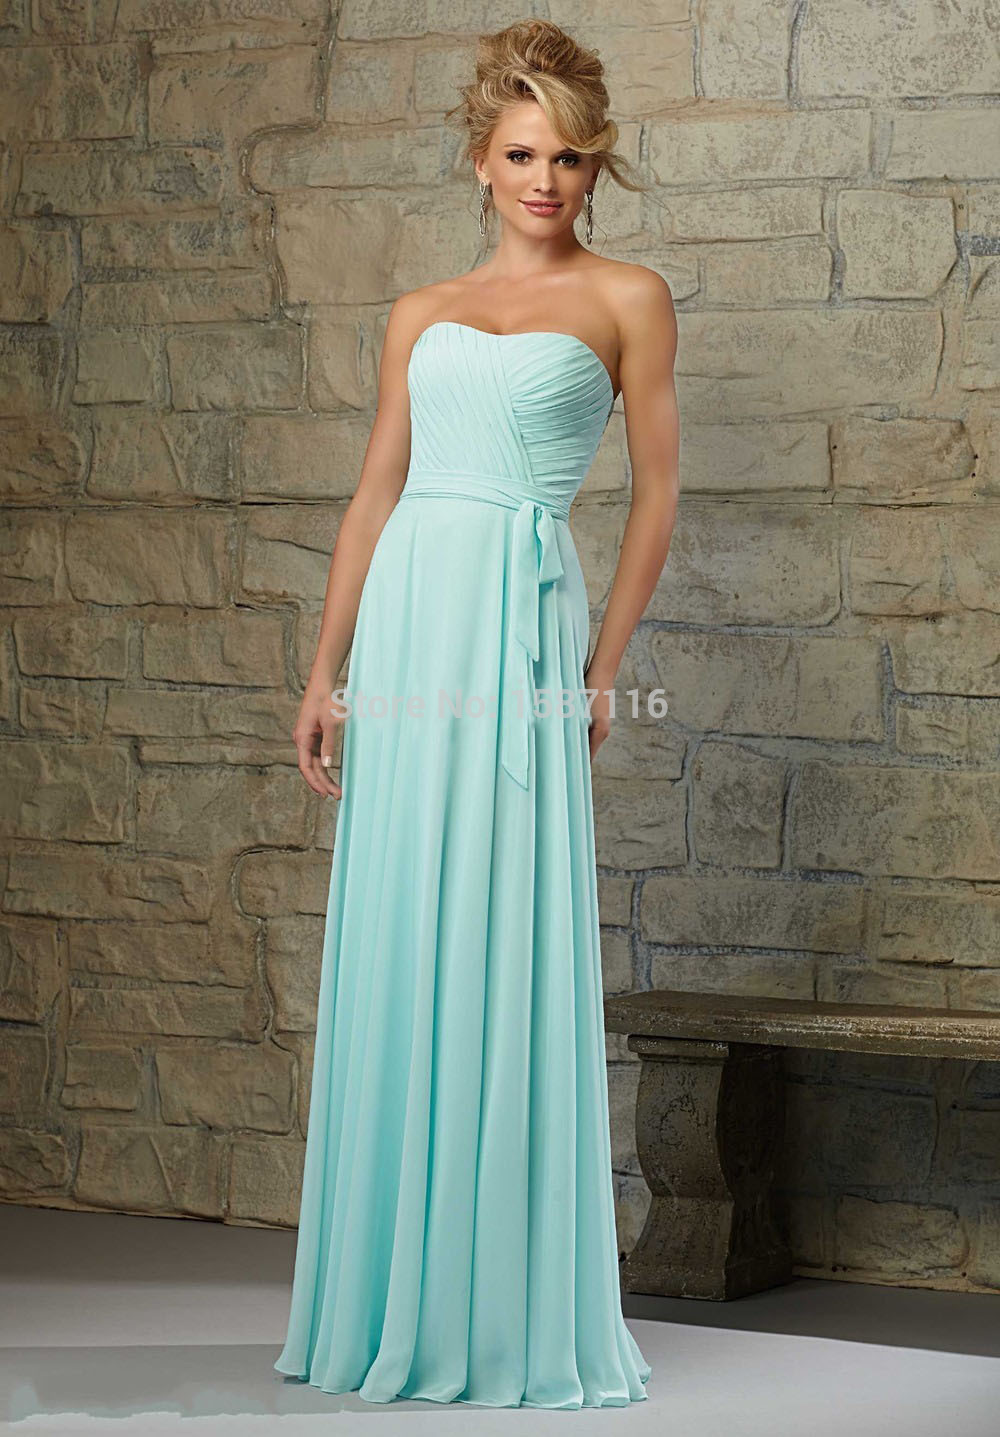 Cool Vestidos De Novia Del 2015 Contemporary - Wedding Ideas ...